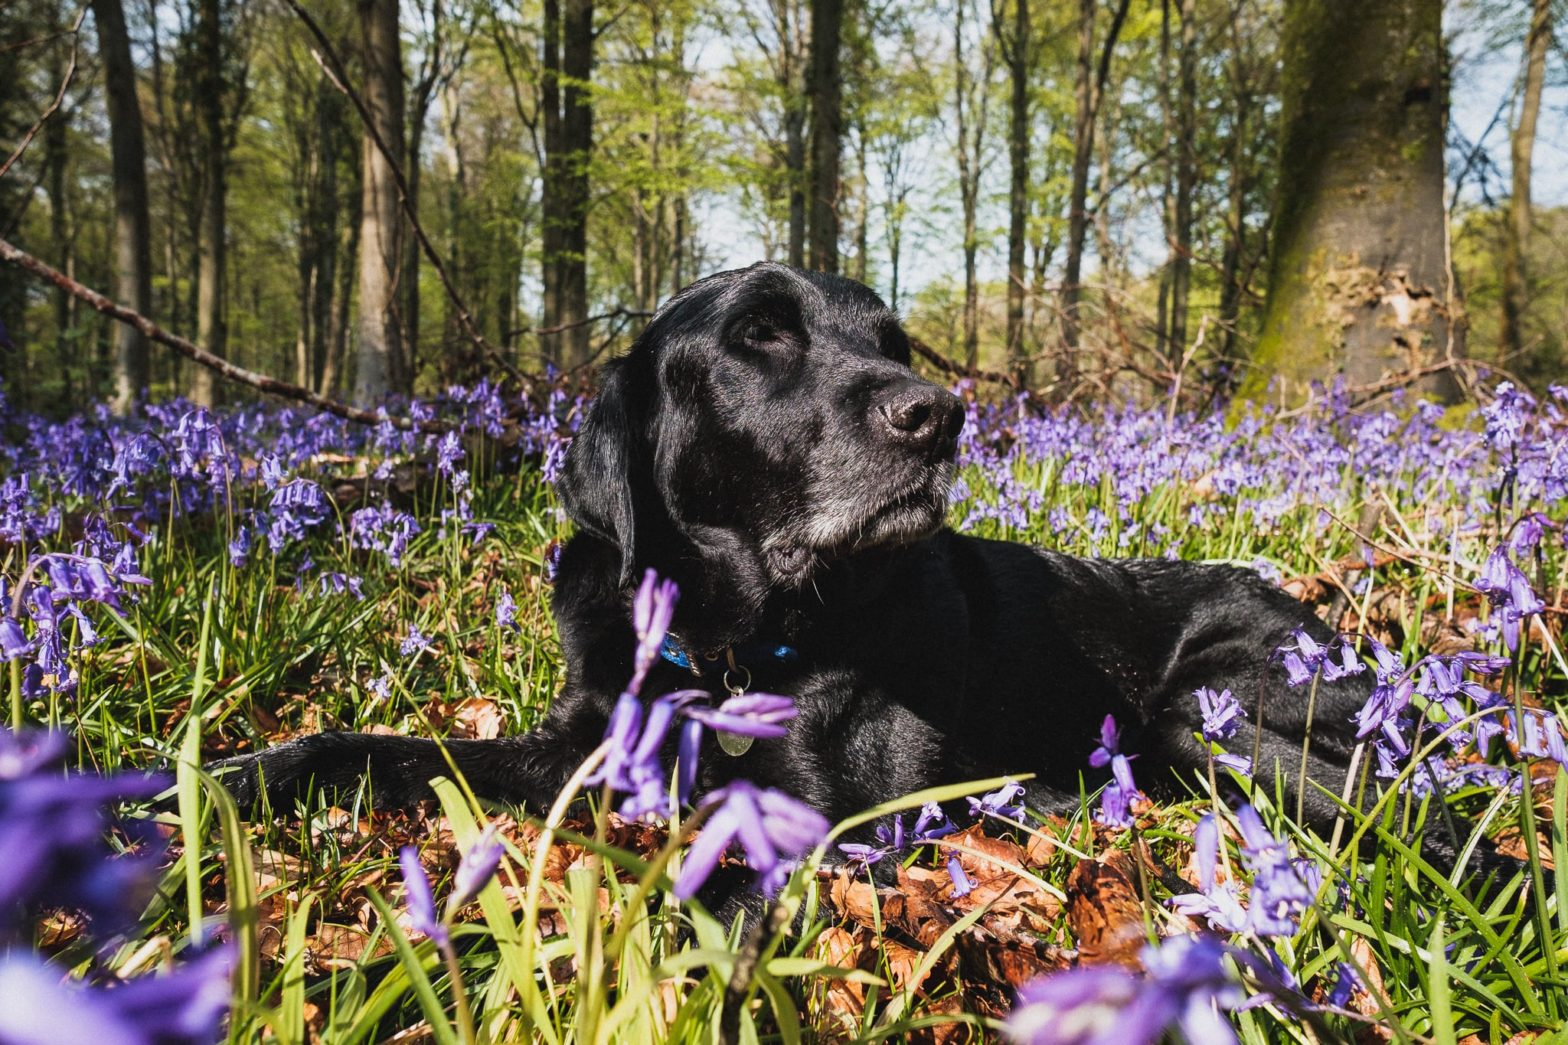 Back dog surrounded by bluebells in the woods at sunset